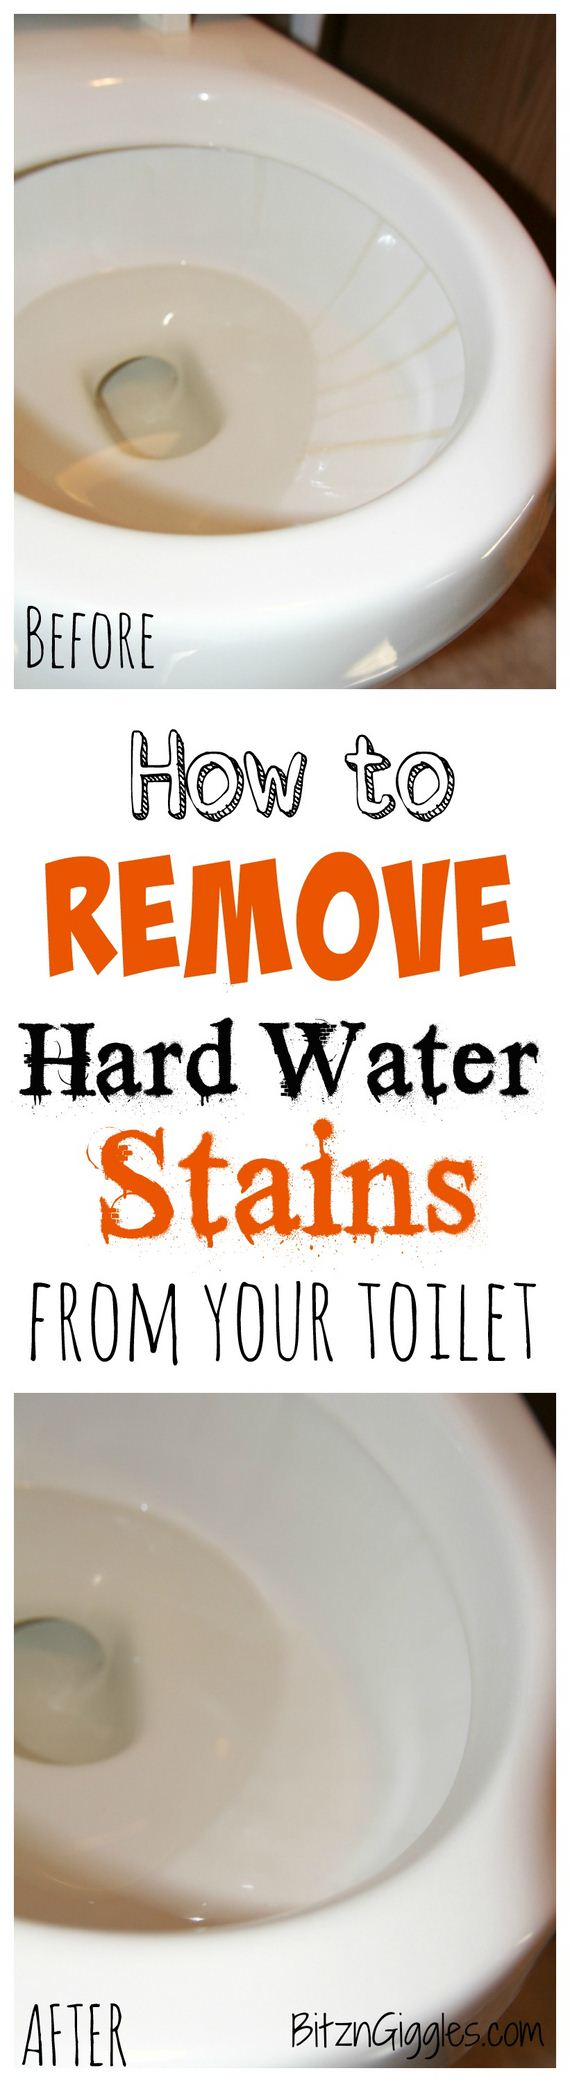 08-Everyday-Bathroom-Cleaning-Tips